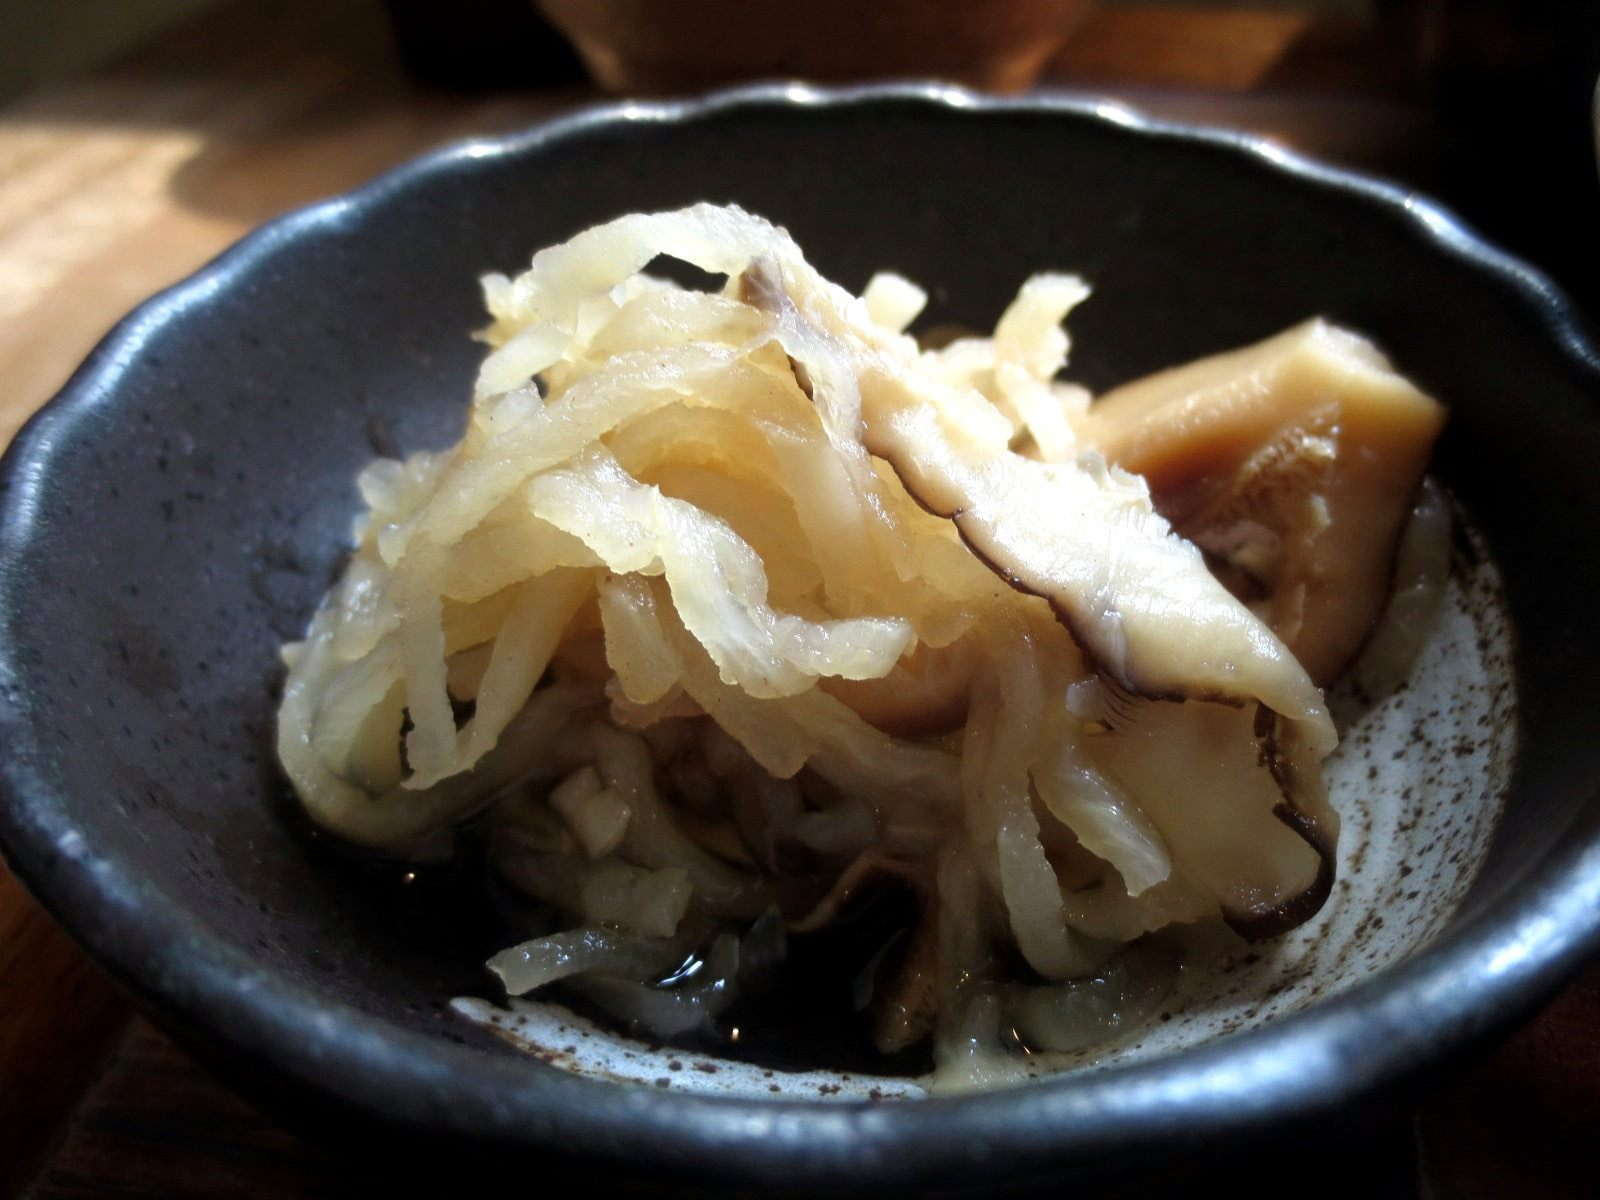 Simmered dried daikon strips